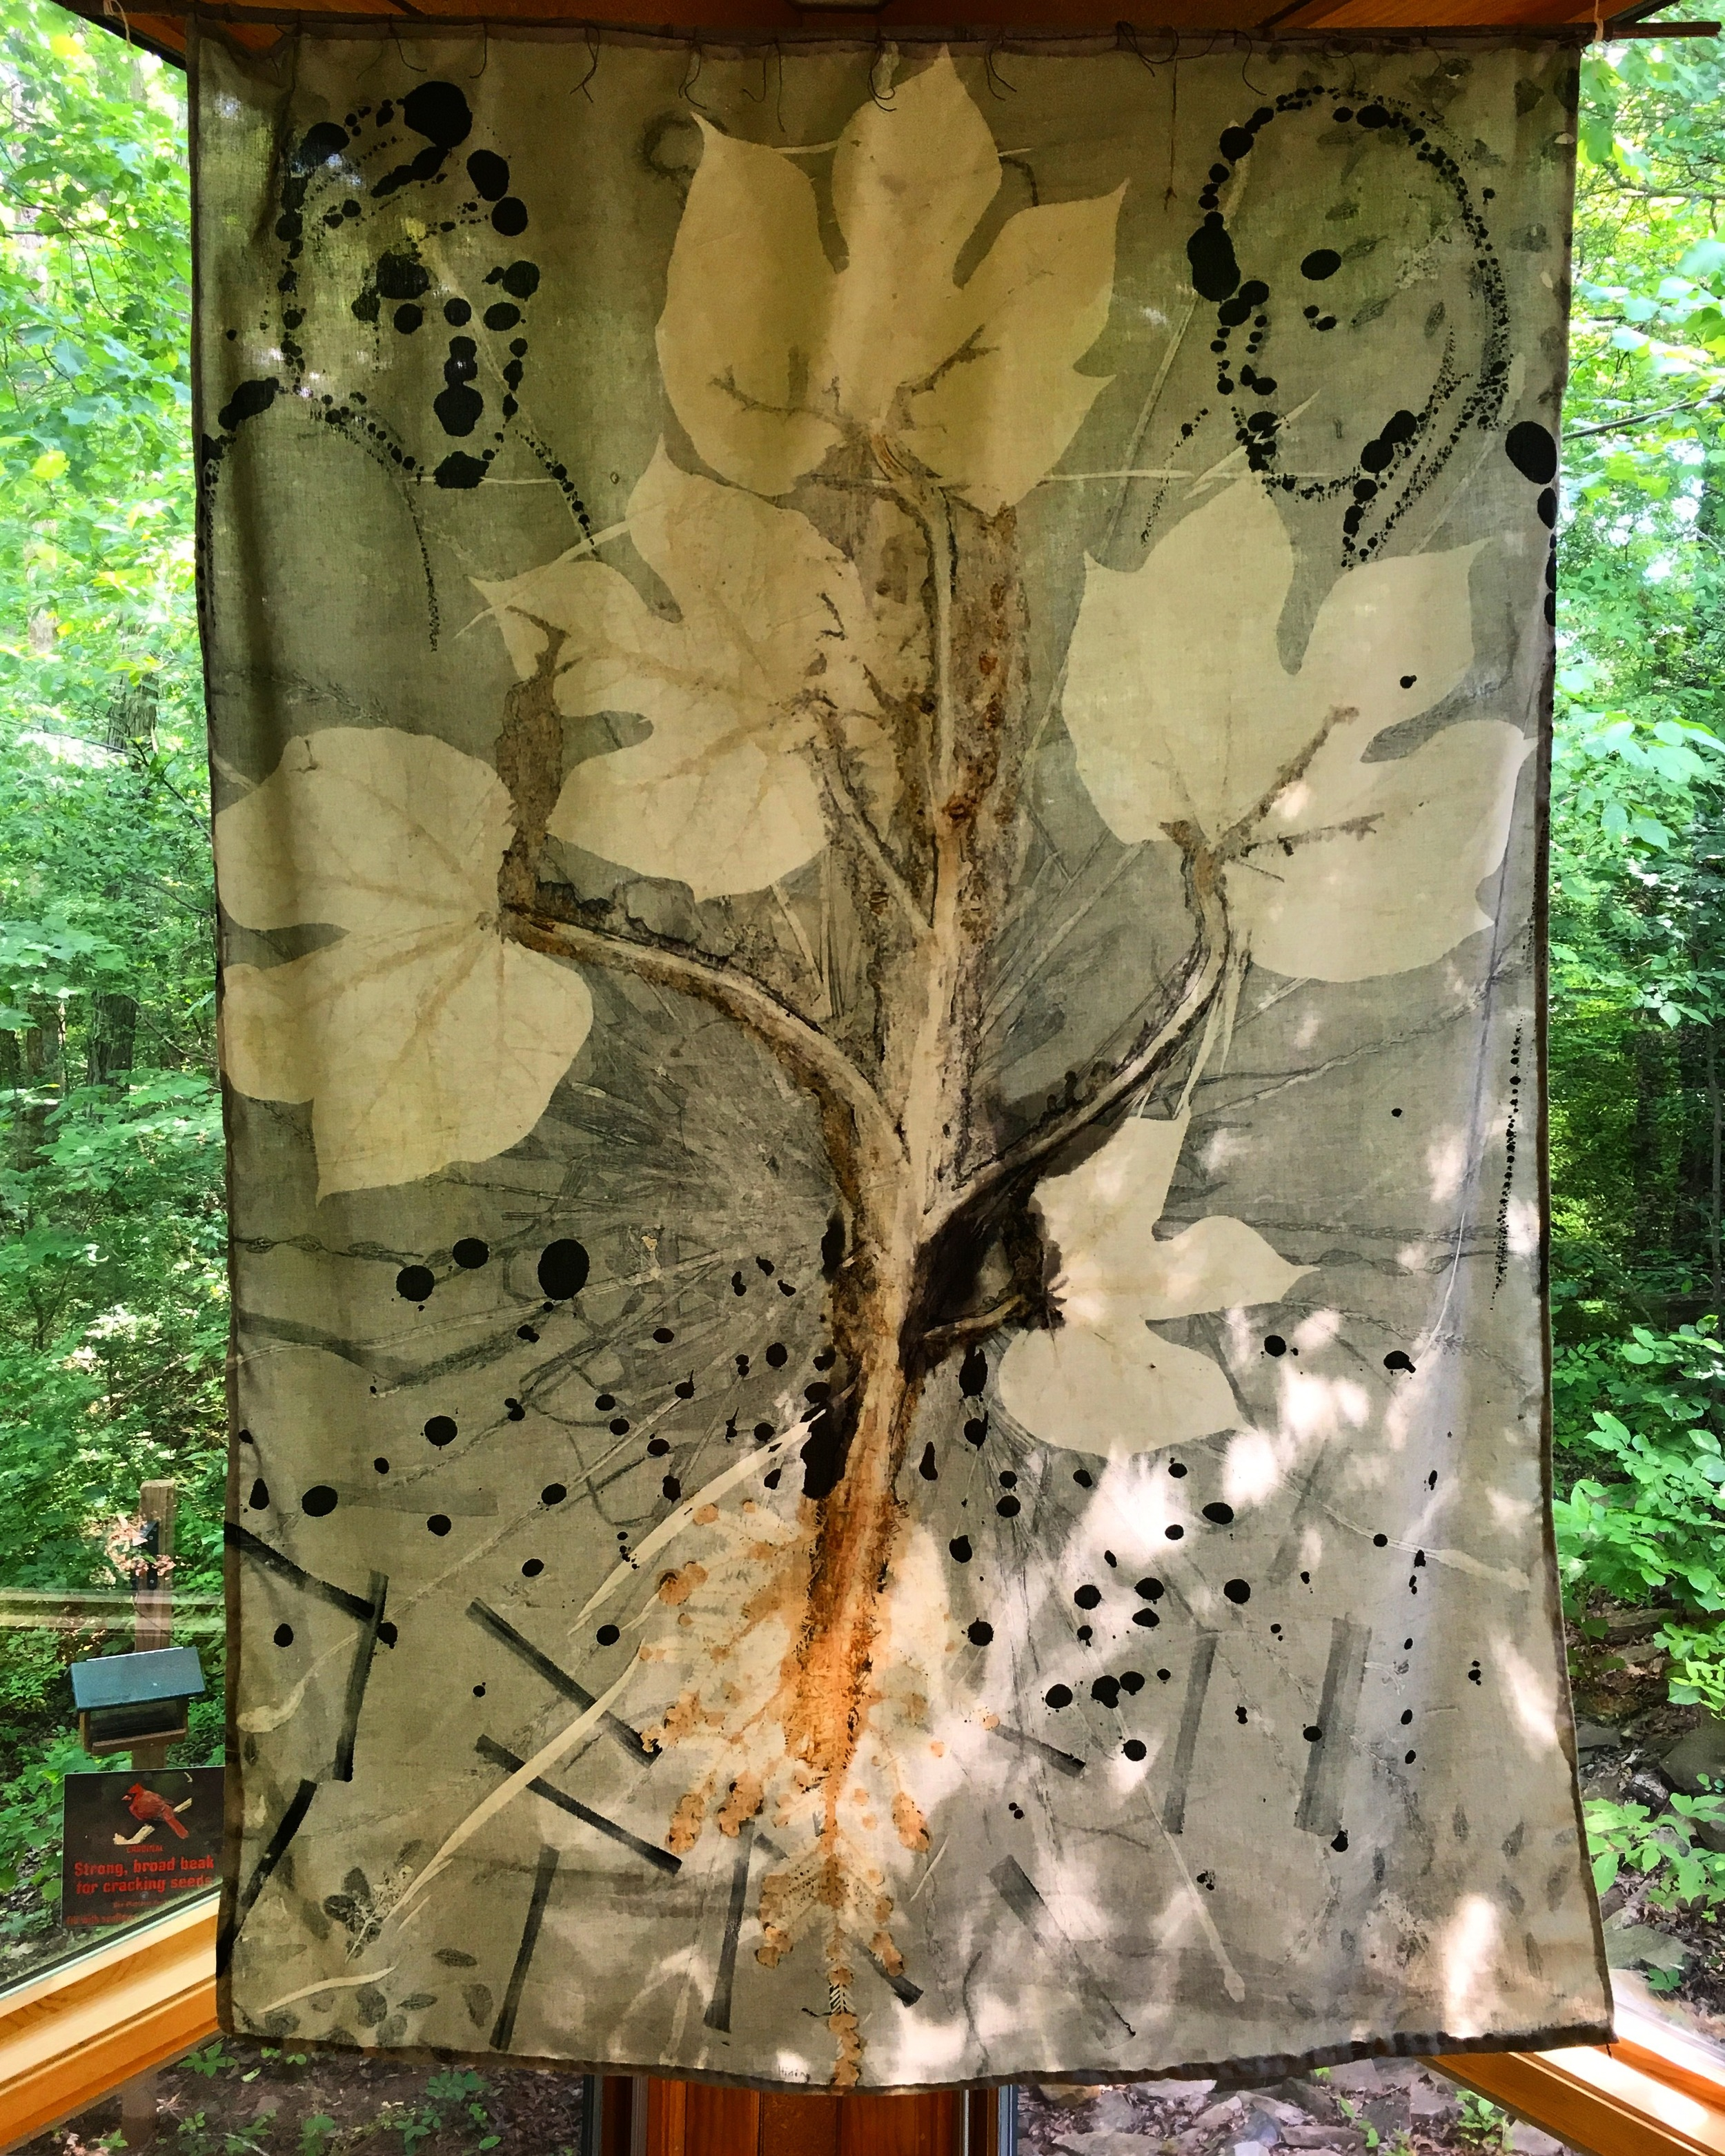 """""""Hiding"""", Celeste Amparo Pfau, botanical mono print with ink drawing on green cotton fabric. This is just one of many pieces in Eco Stories, an exhibition of work by local artists in conversation with nature. Check it out today at the Nature Center!"""